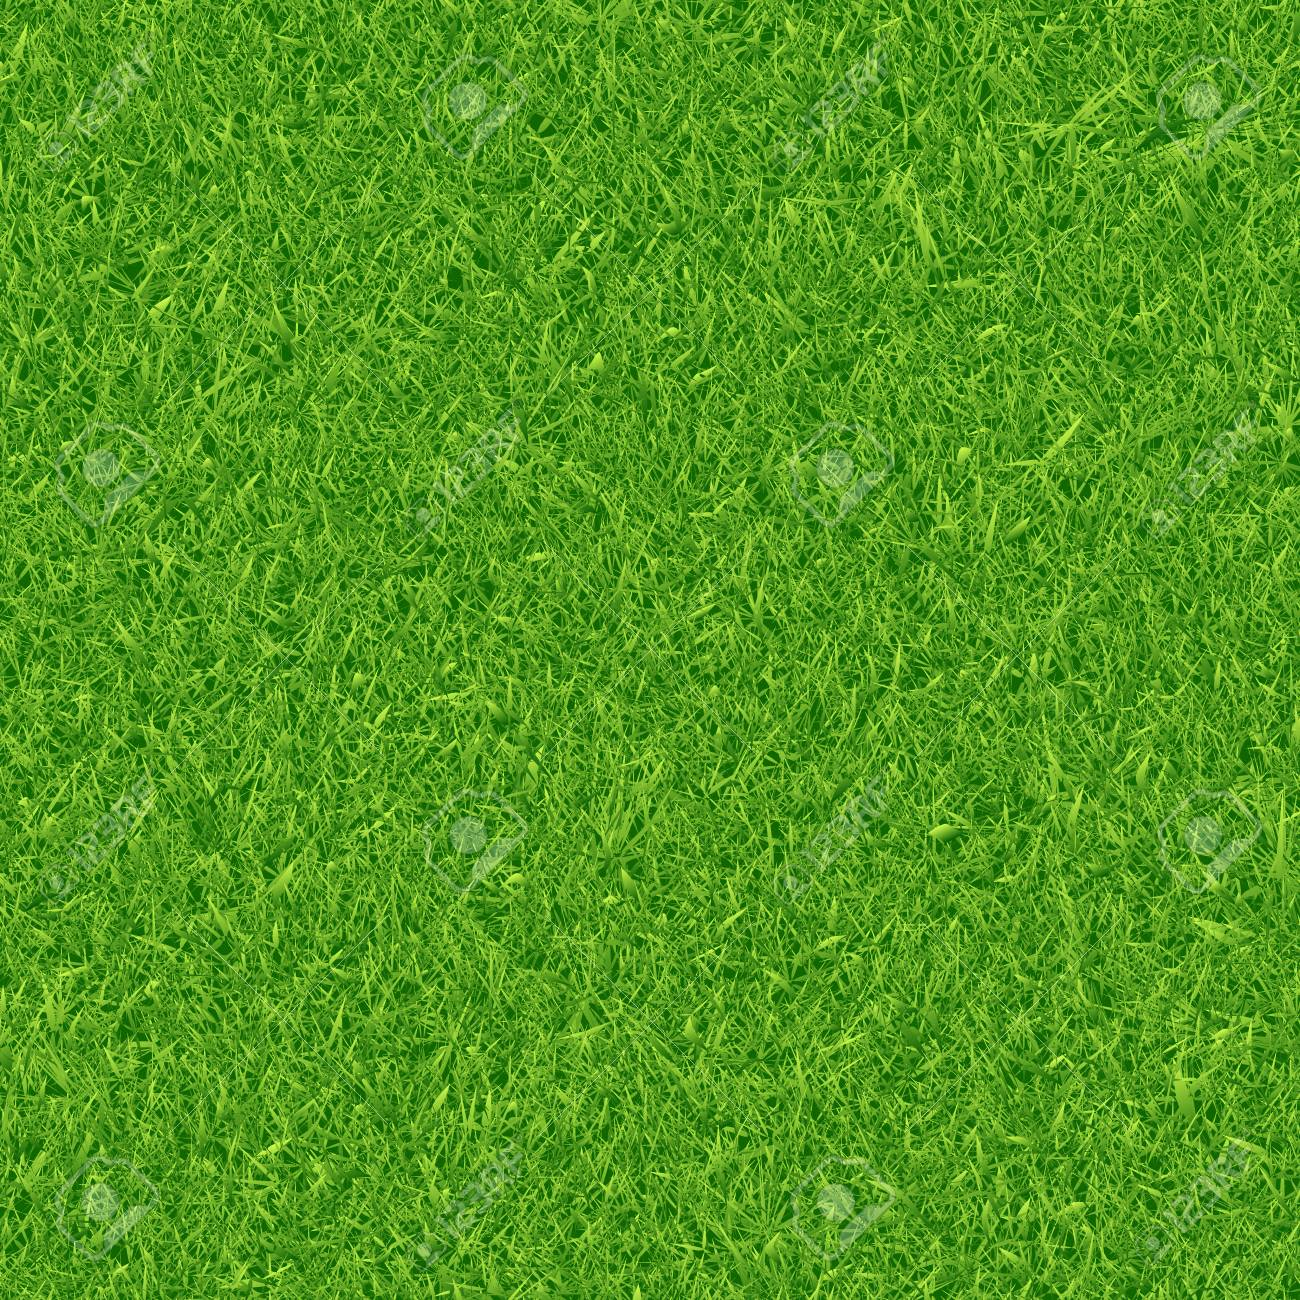 green grass texture vector background royalty free cliparts vectors and stock illustration image 55147672 green grass texture vector background